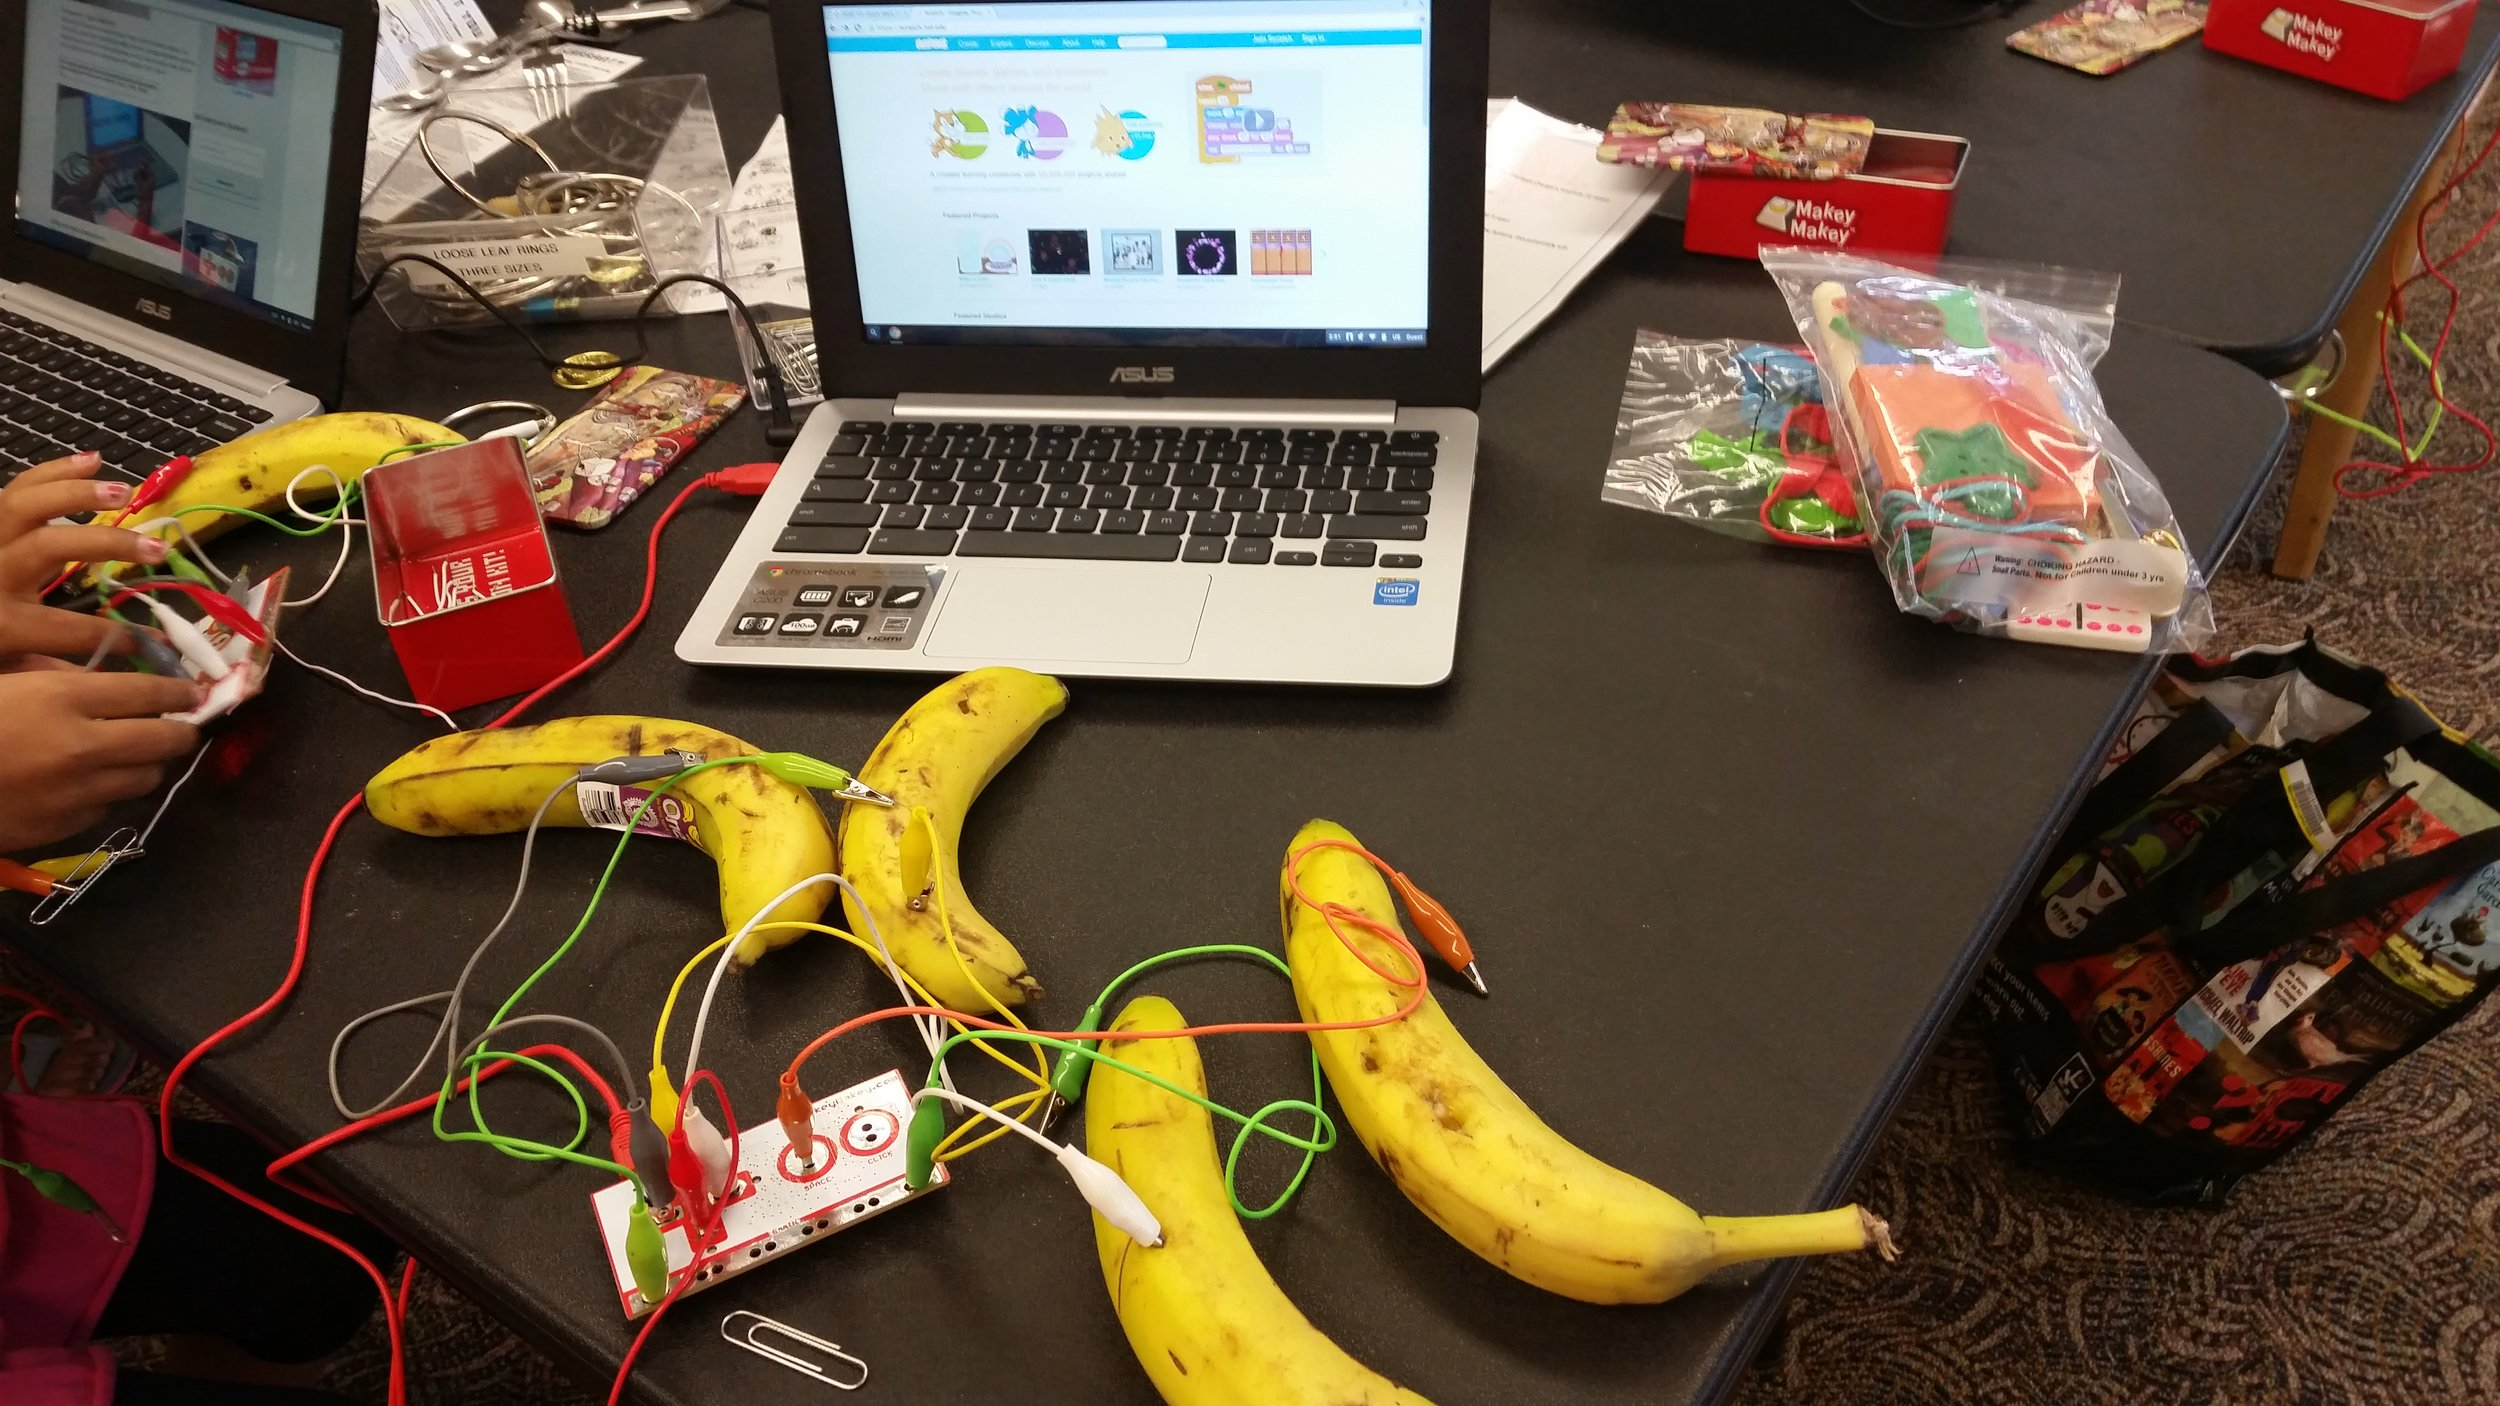 [' Foster Library's Makey Makey Banana Controller ' by  Washington State Library  licenced under  CC BY-NC 2.0 ]